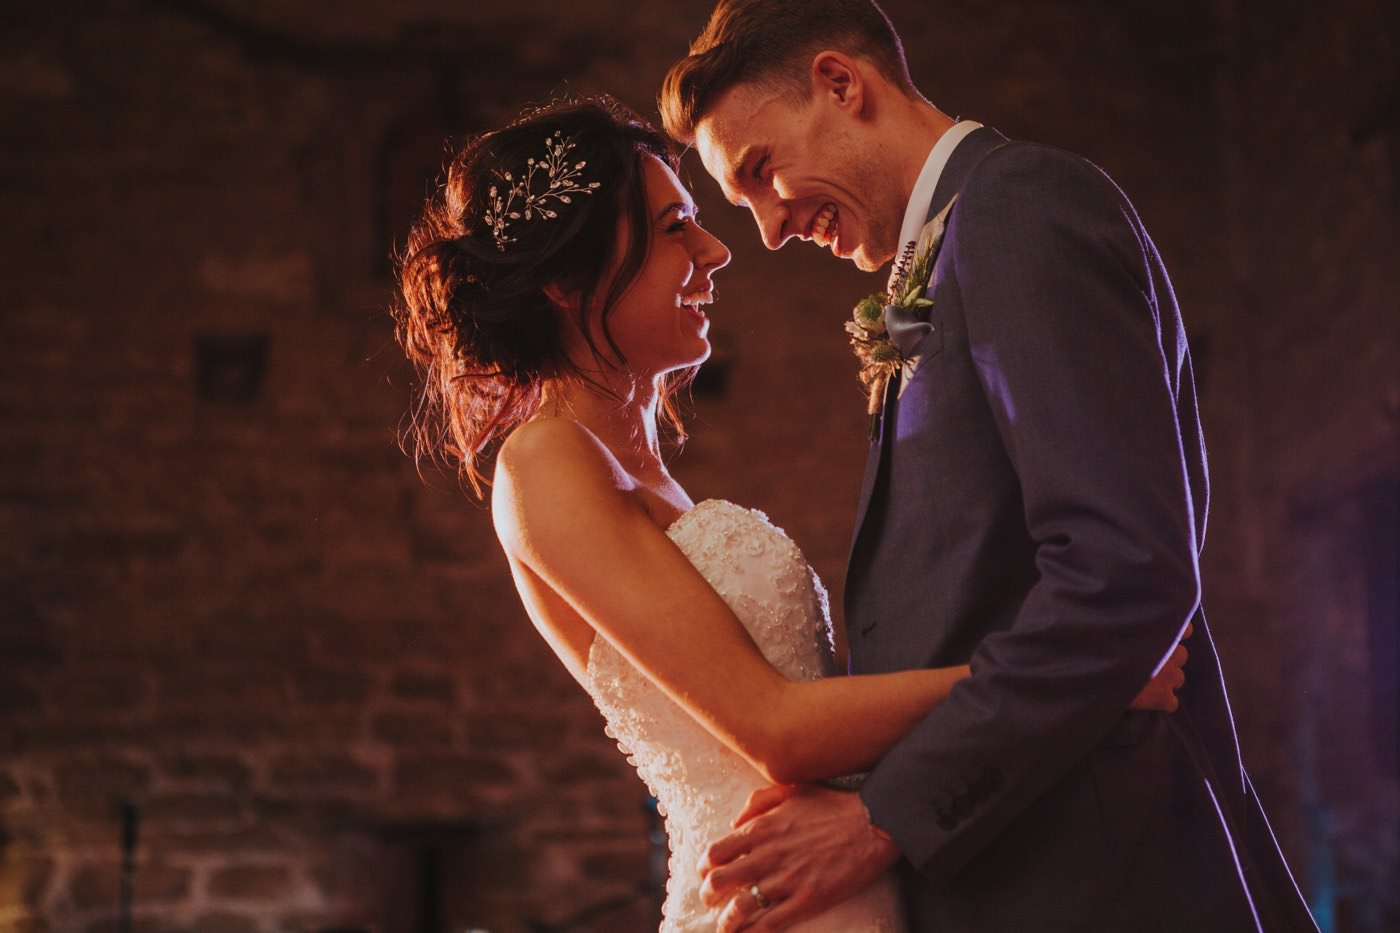 Matt & Emma | Hooton Pagnell Hall & Stable Arches 93